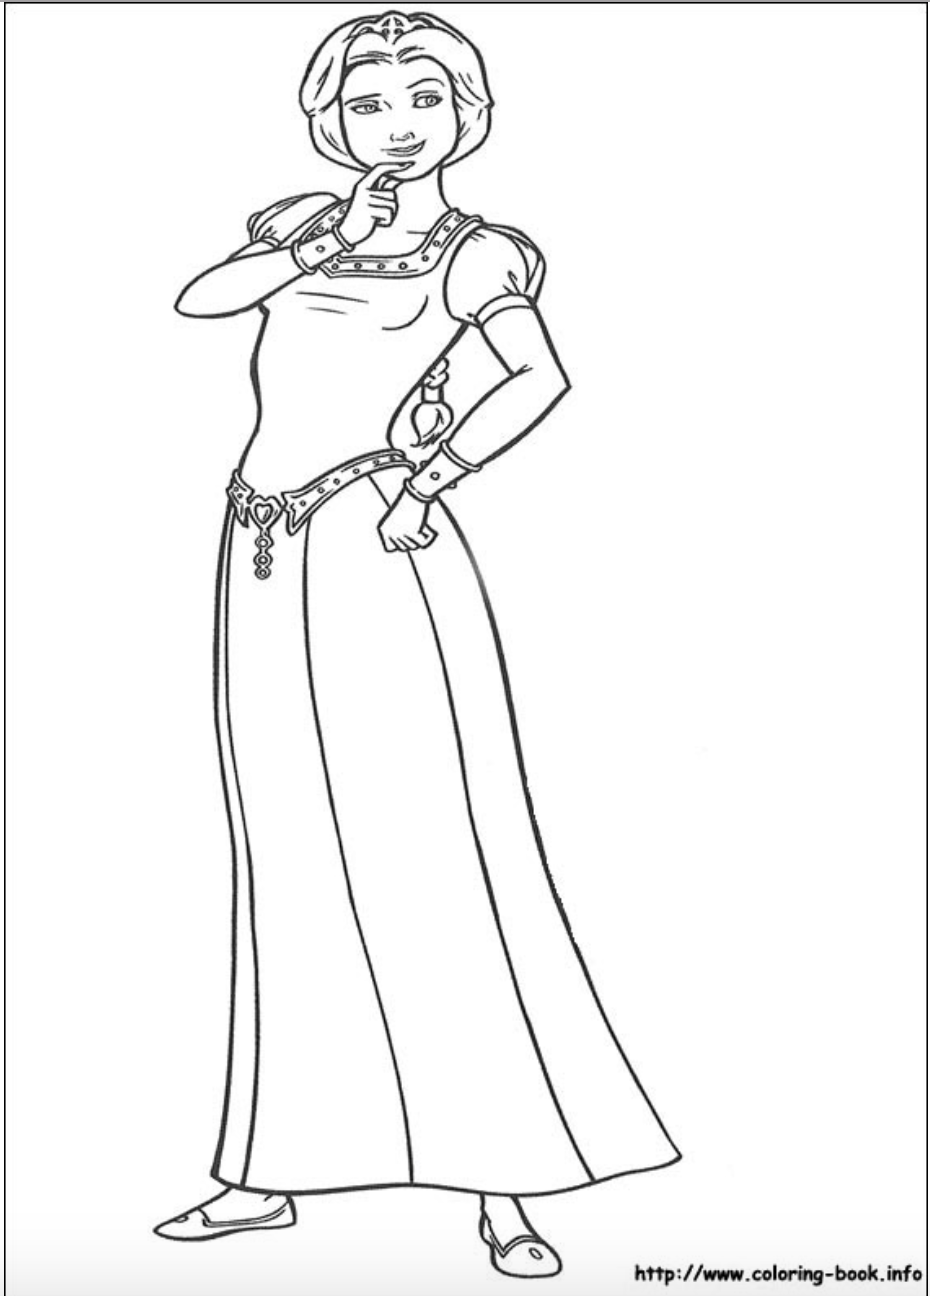 Princess Fiona from Shrek coloring page | Princess Fiona | Pinterest ...